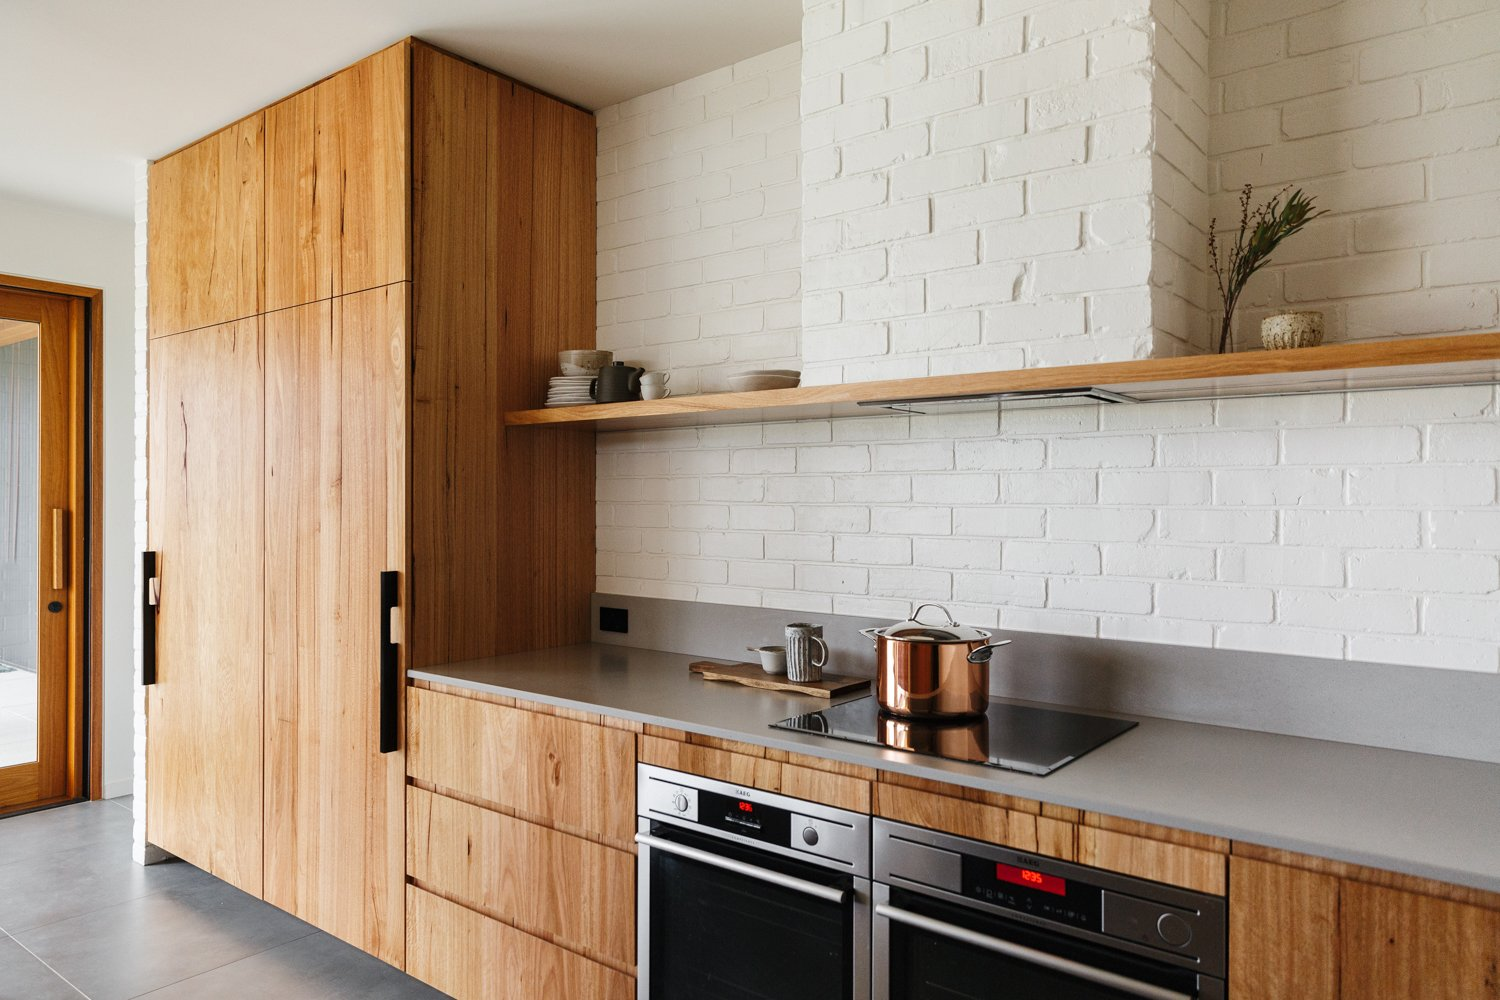 Kitchen, Wood, Engineered Quartz, Brick, Cooktops, and Wall Oven  Best Kitchen Wood Brick Photos from The Surrounding Countryside Inspires a Family Home in Australia's Adelaide Hills